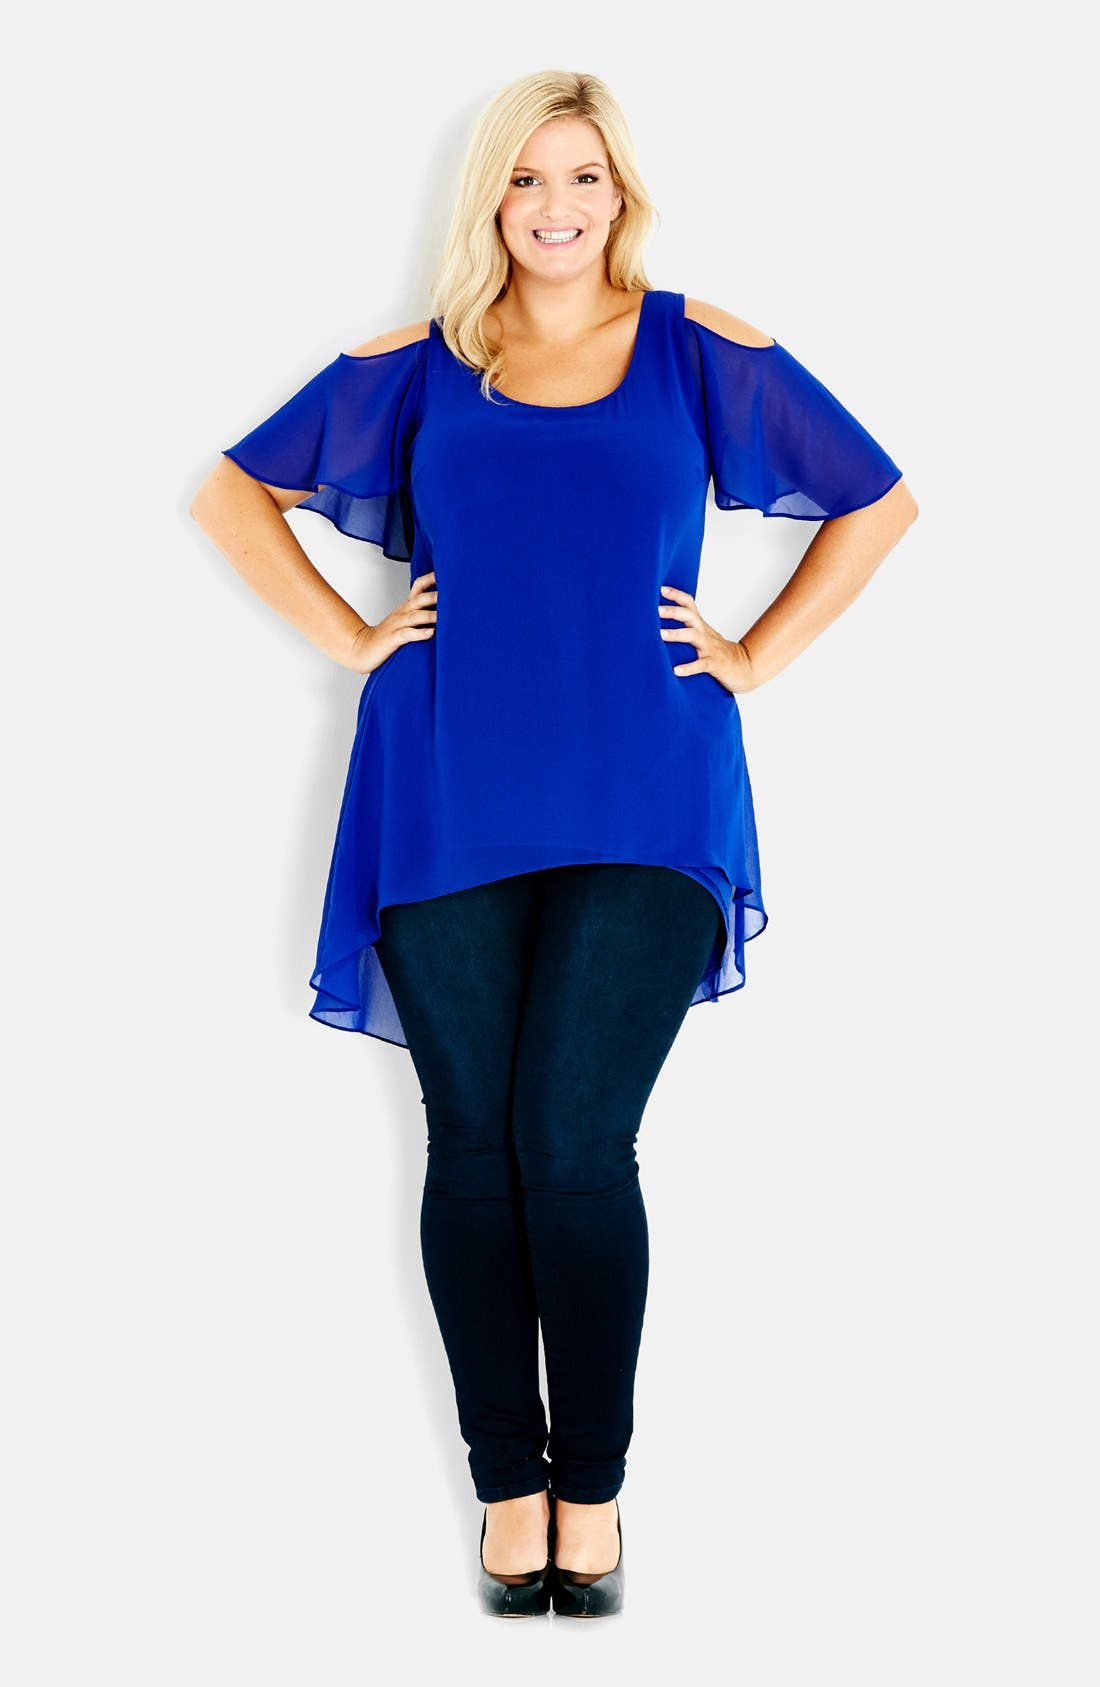 Alternate Image 1 Selected - City Chic Cold Shoulder High/Low Tunic Top (Plus Size)